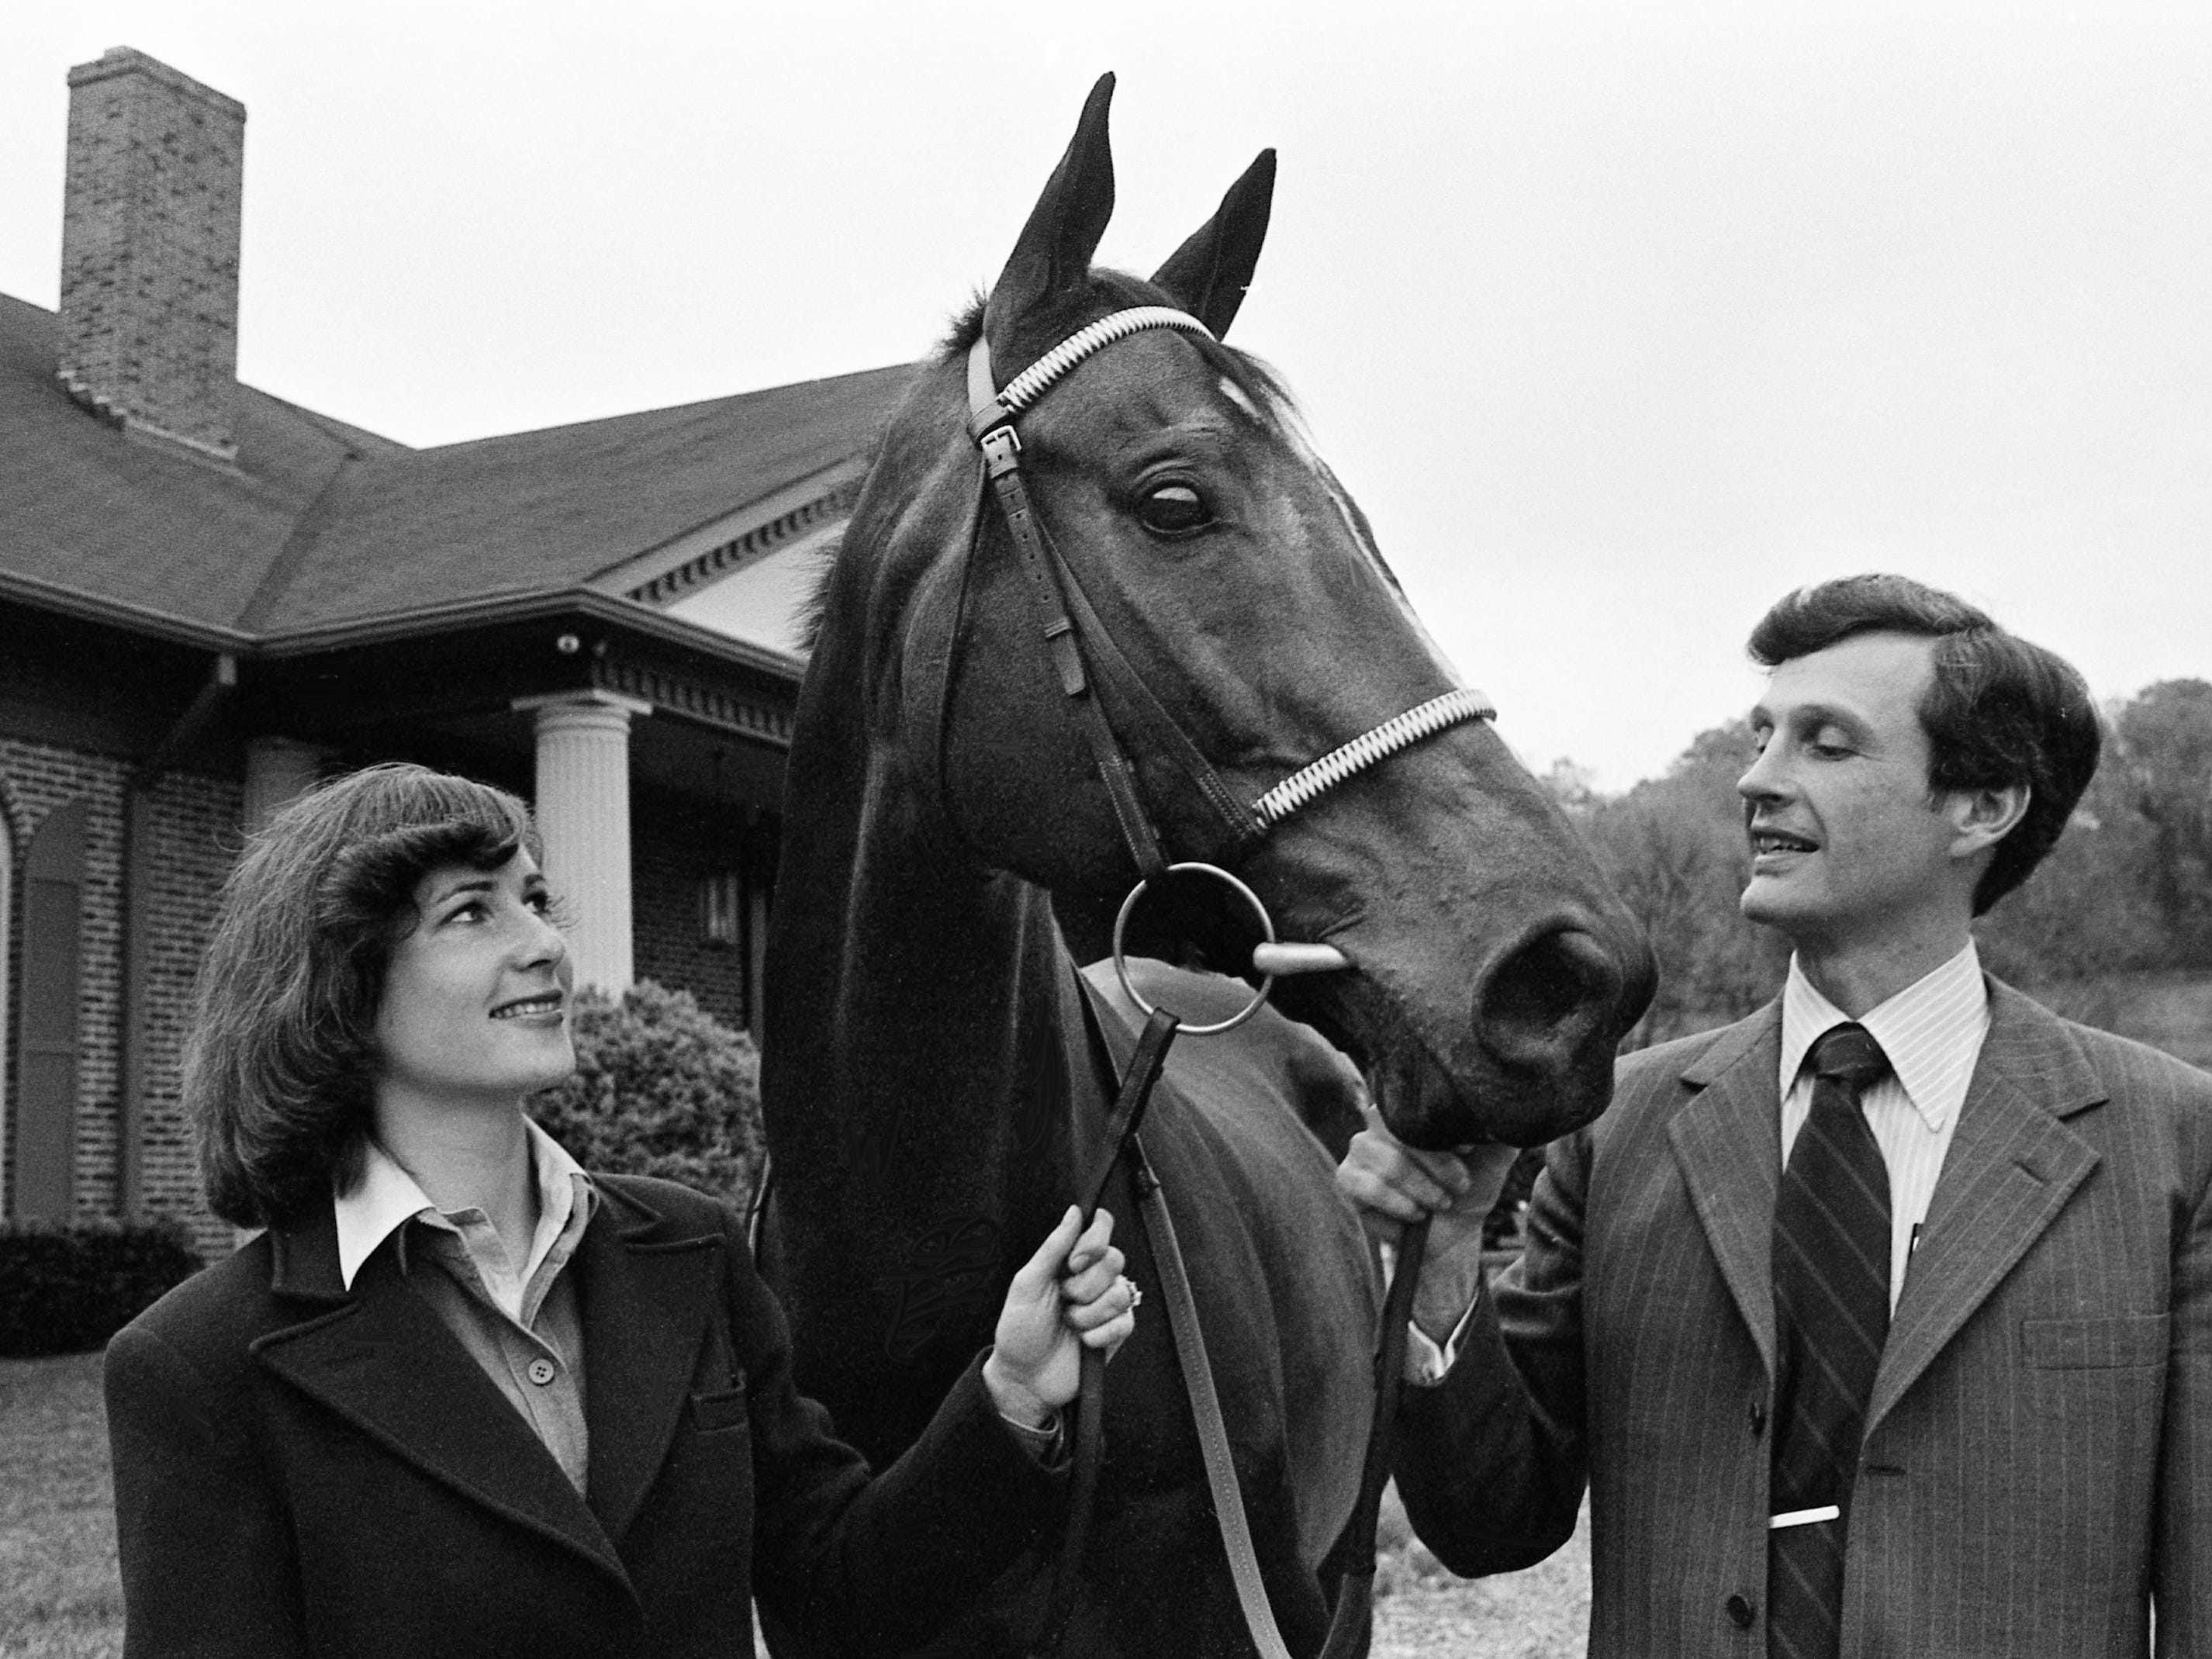 Jane and George Sloan, perhaps the finest husband-wife steeplechase team in the country, check out one of their horses, Prime Motive, April 24, 1979. They may enter the horse in the Iroquois Steeplechase on May 12.